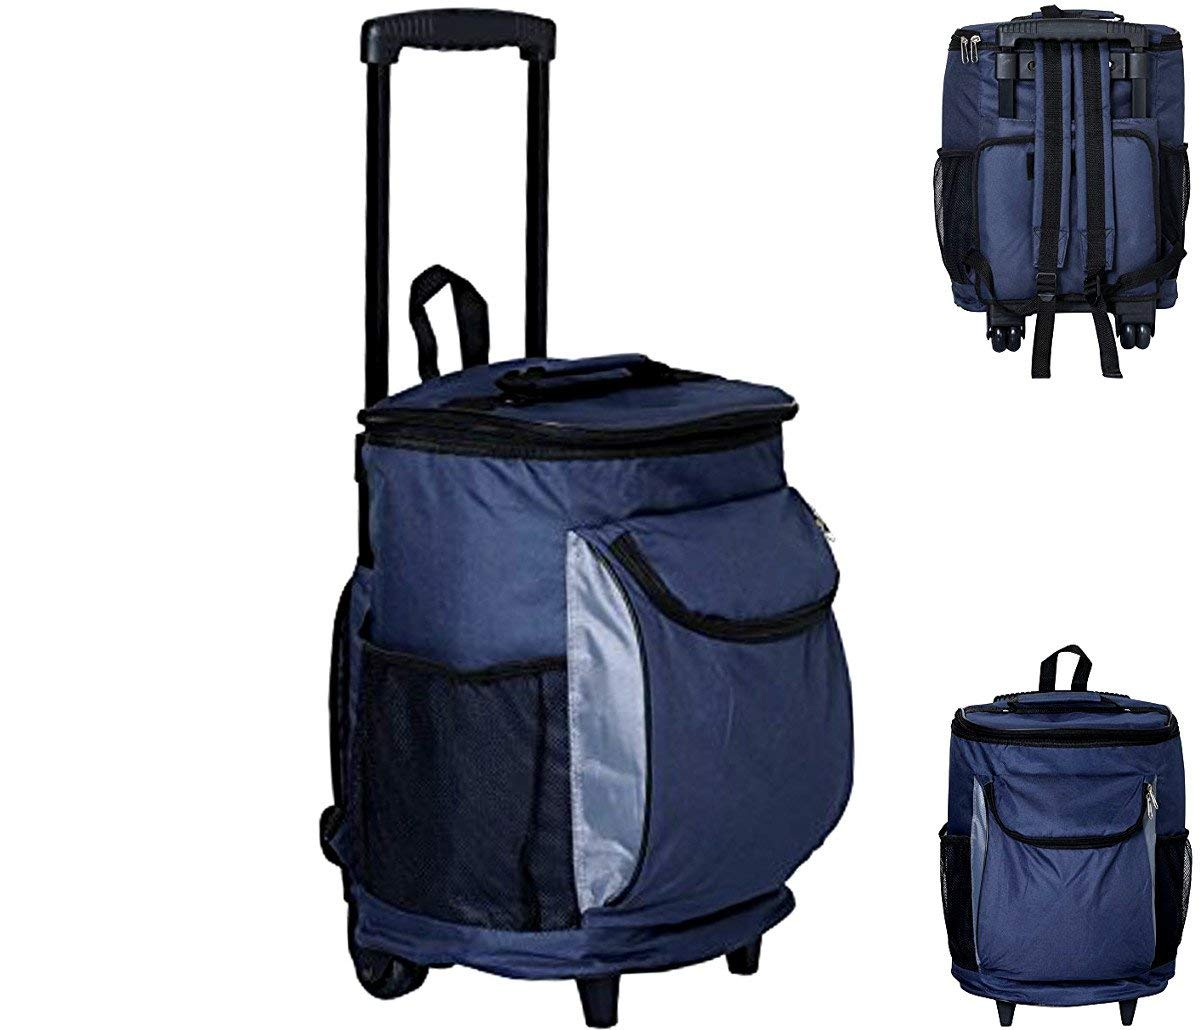 1294bdb084d5 Get Quotations ·  1 Best 40-Can Insulated Cooler Bag on Wheels   Telescopic  Handle   Backpack